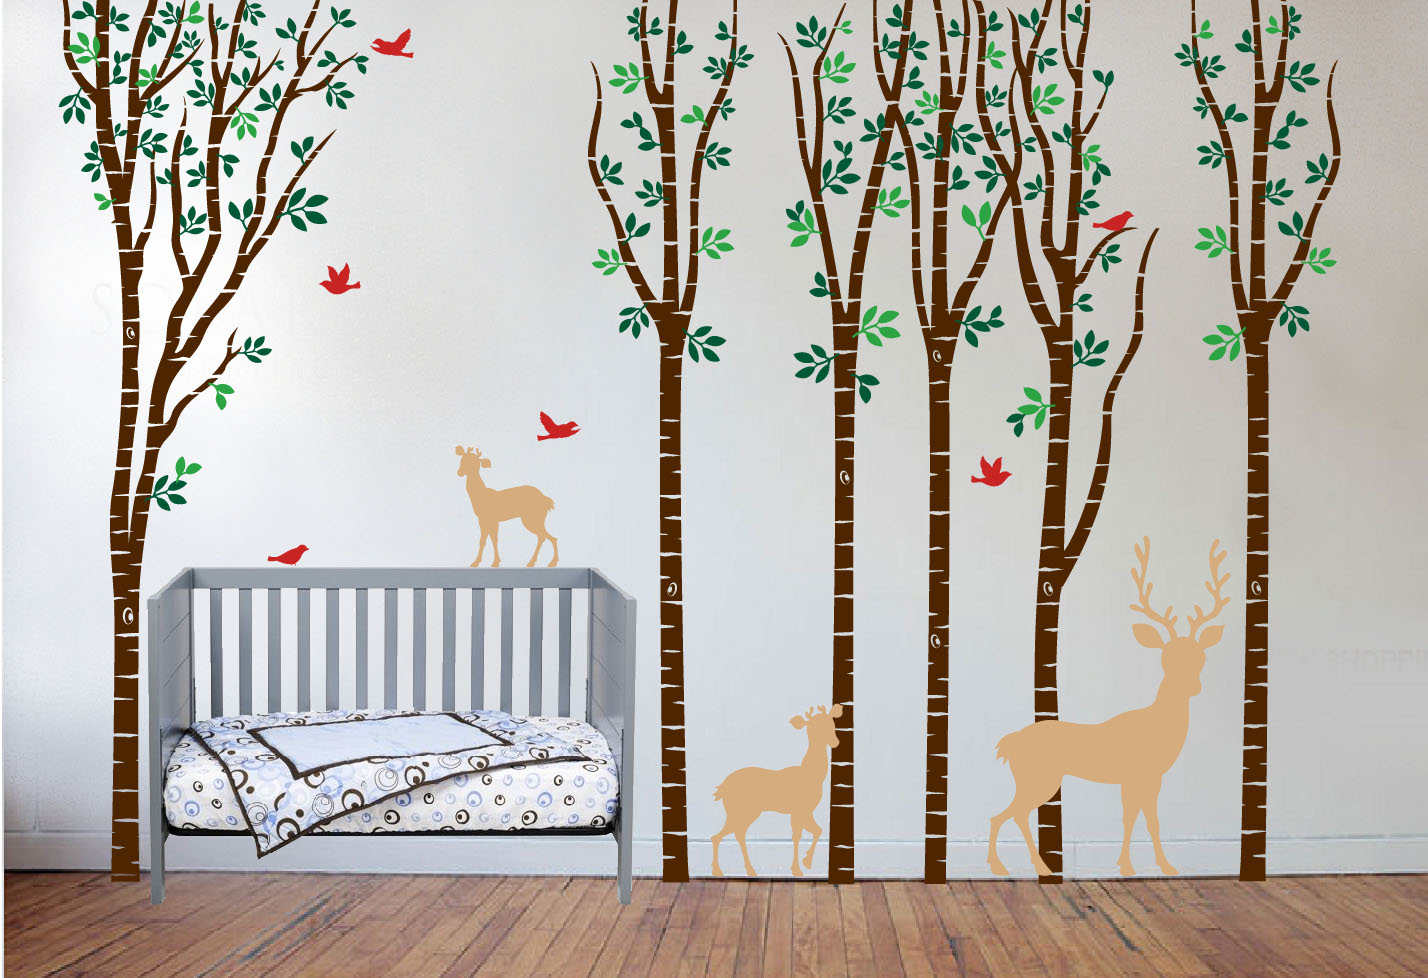 Birch tree forest set vinyl nursery wall decal deer 1264 birch tree nursery deer set birds brown crib amipublicfo Choice Image